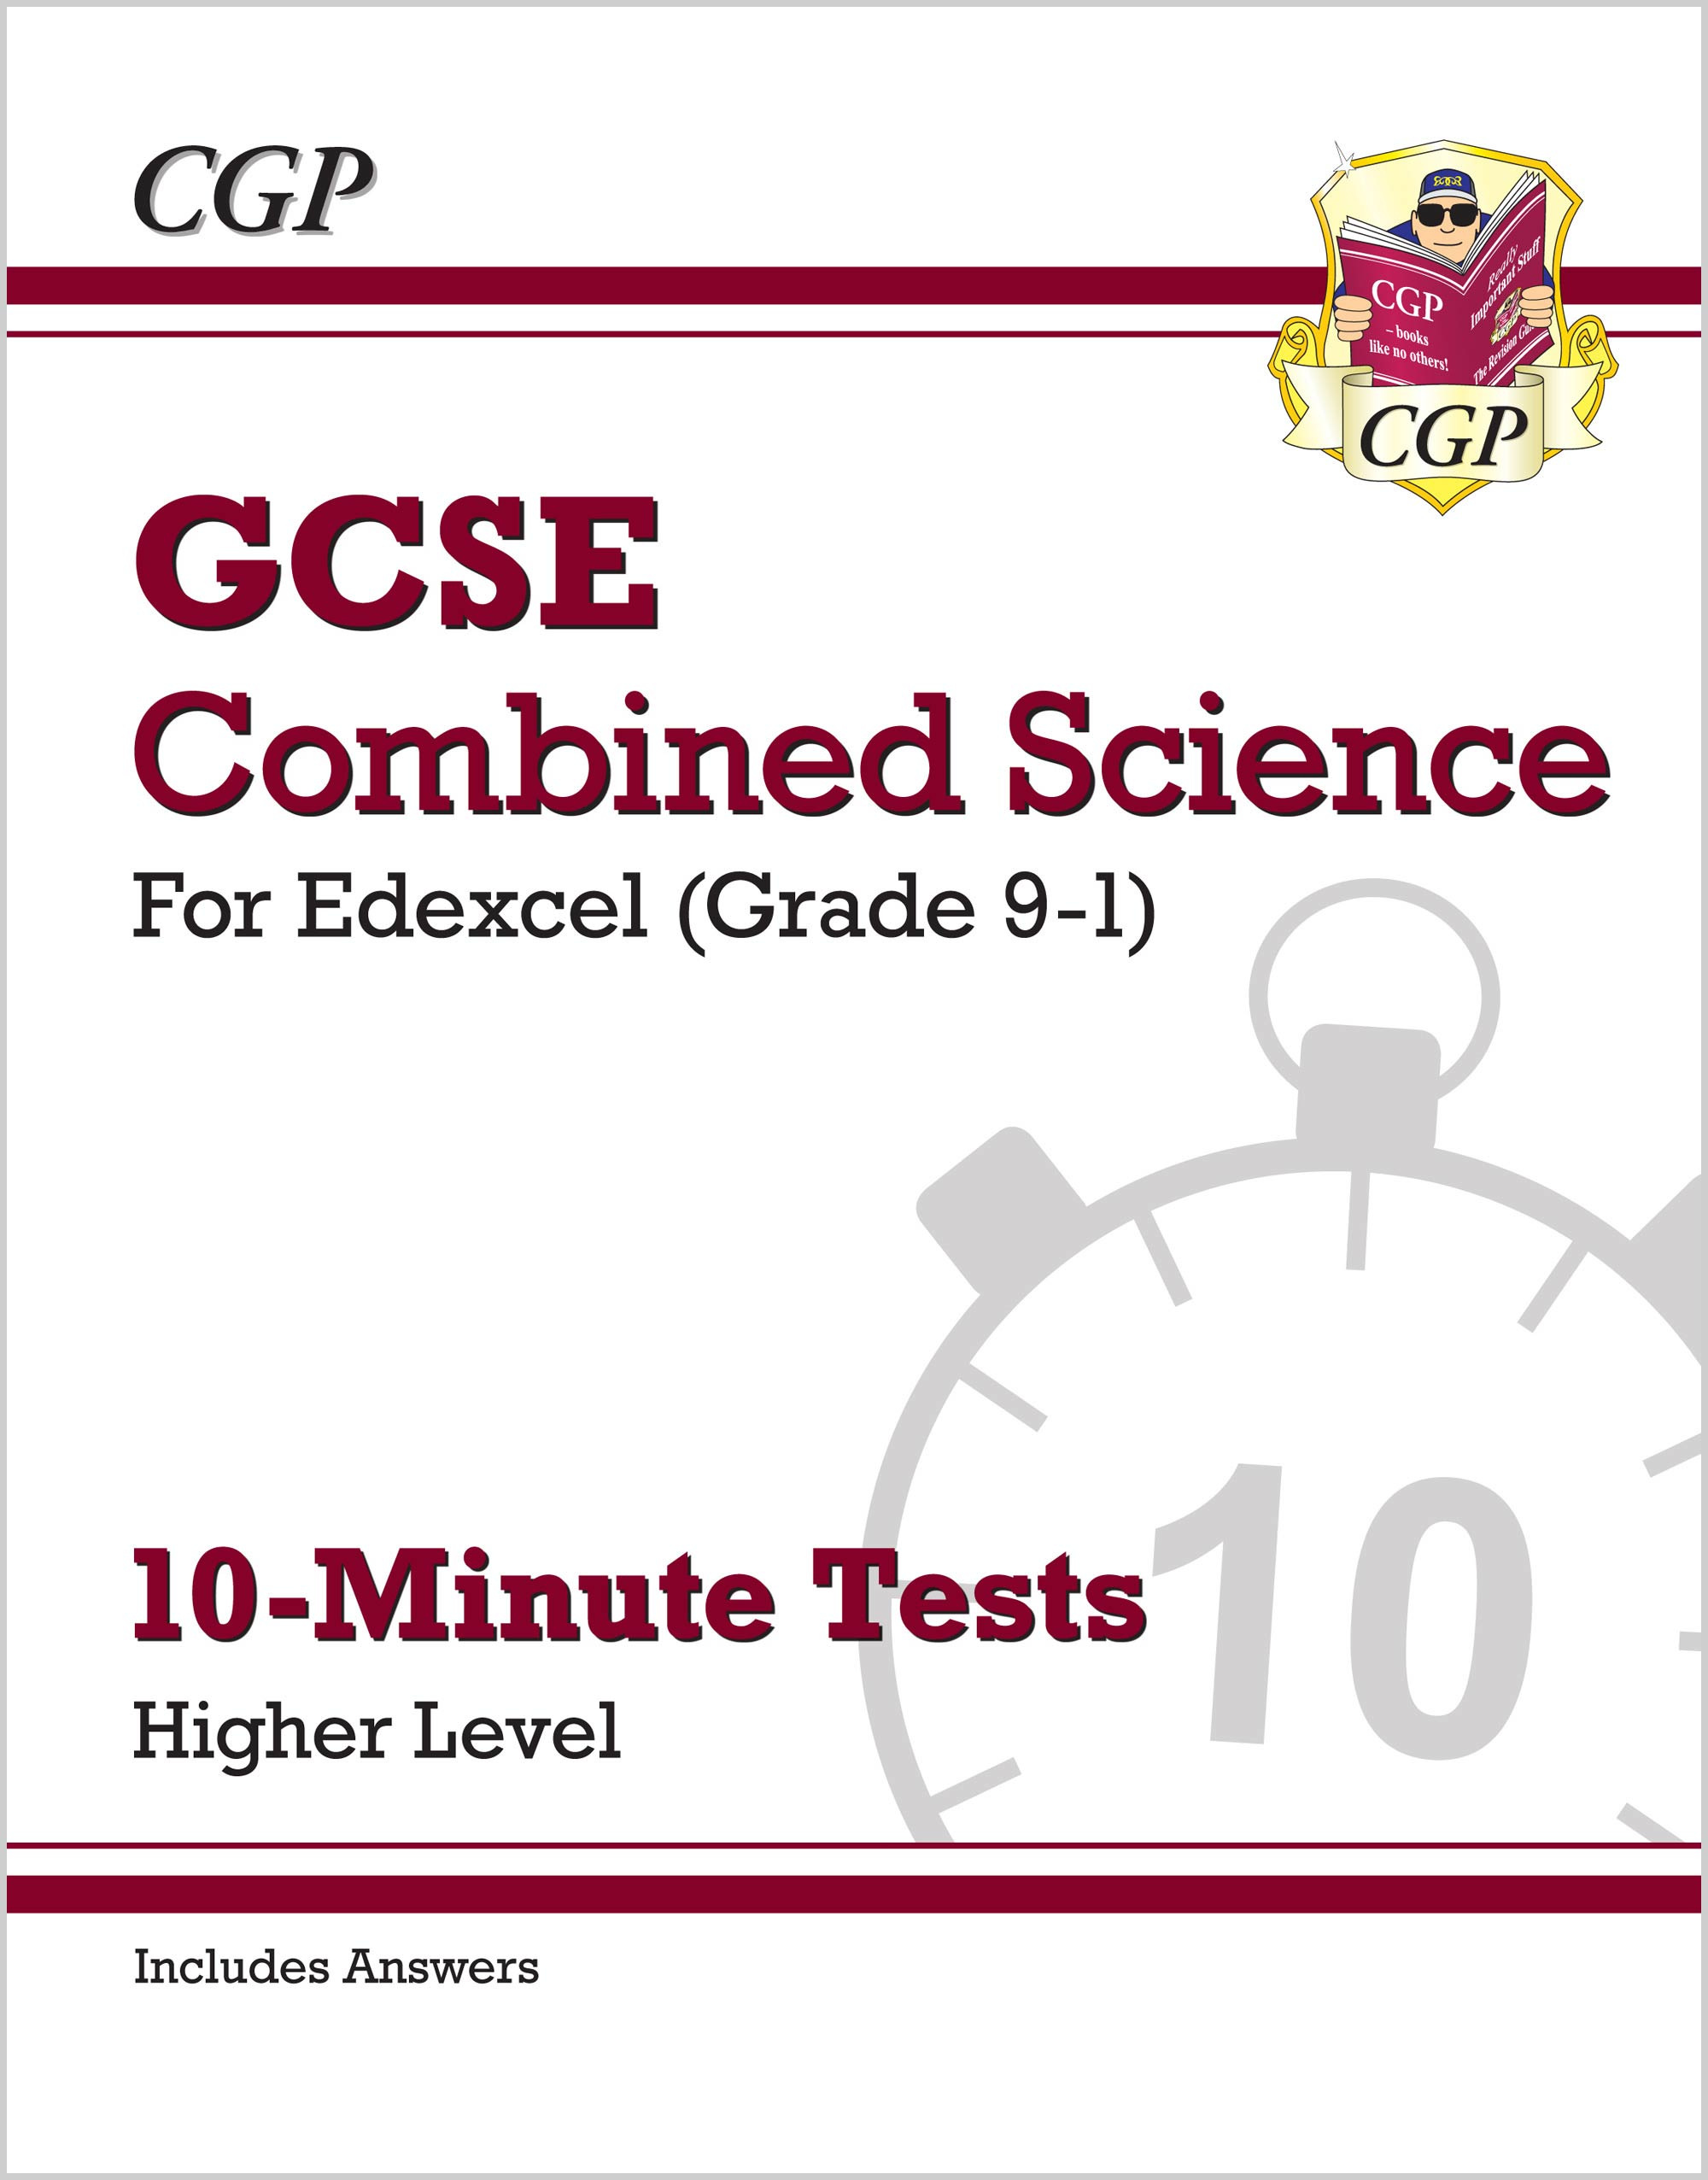 SEHXP41 - Grade 9-1 GCSE Combined Science: Edexcel 10-Minute Tests (with answers) - Higher